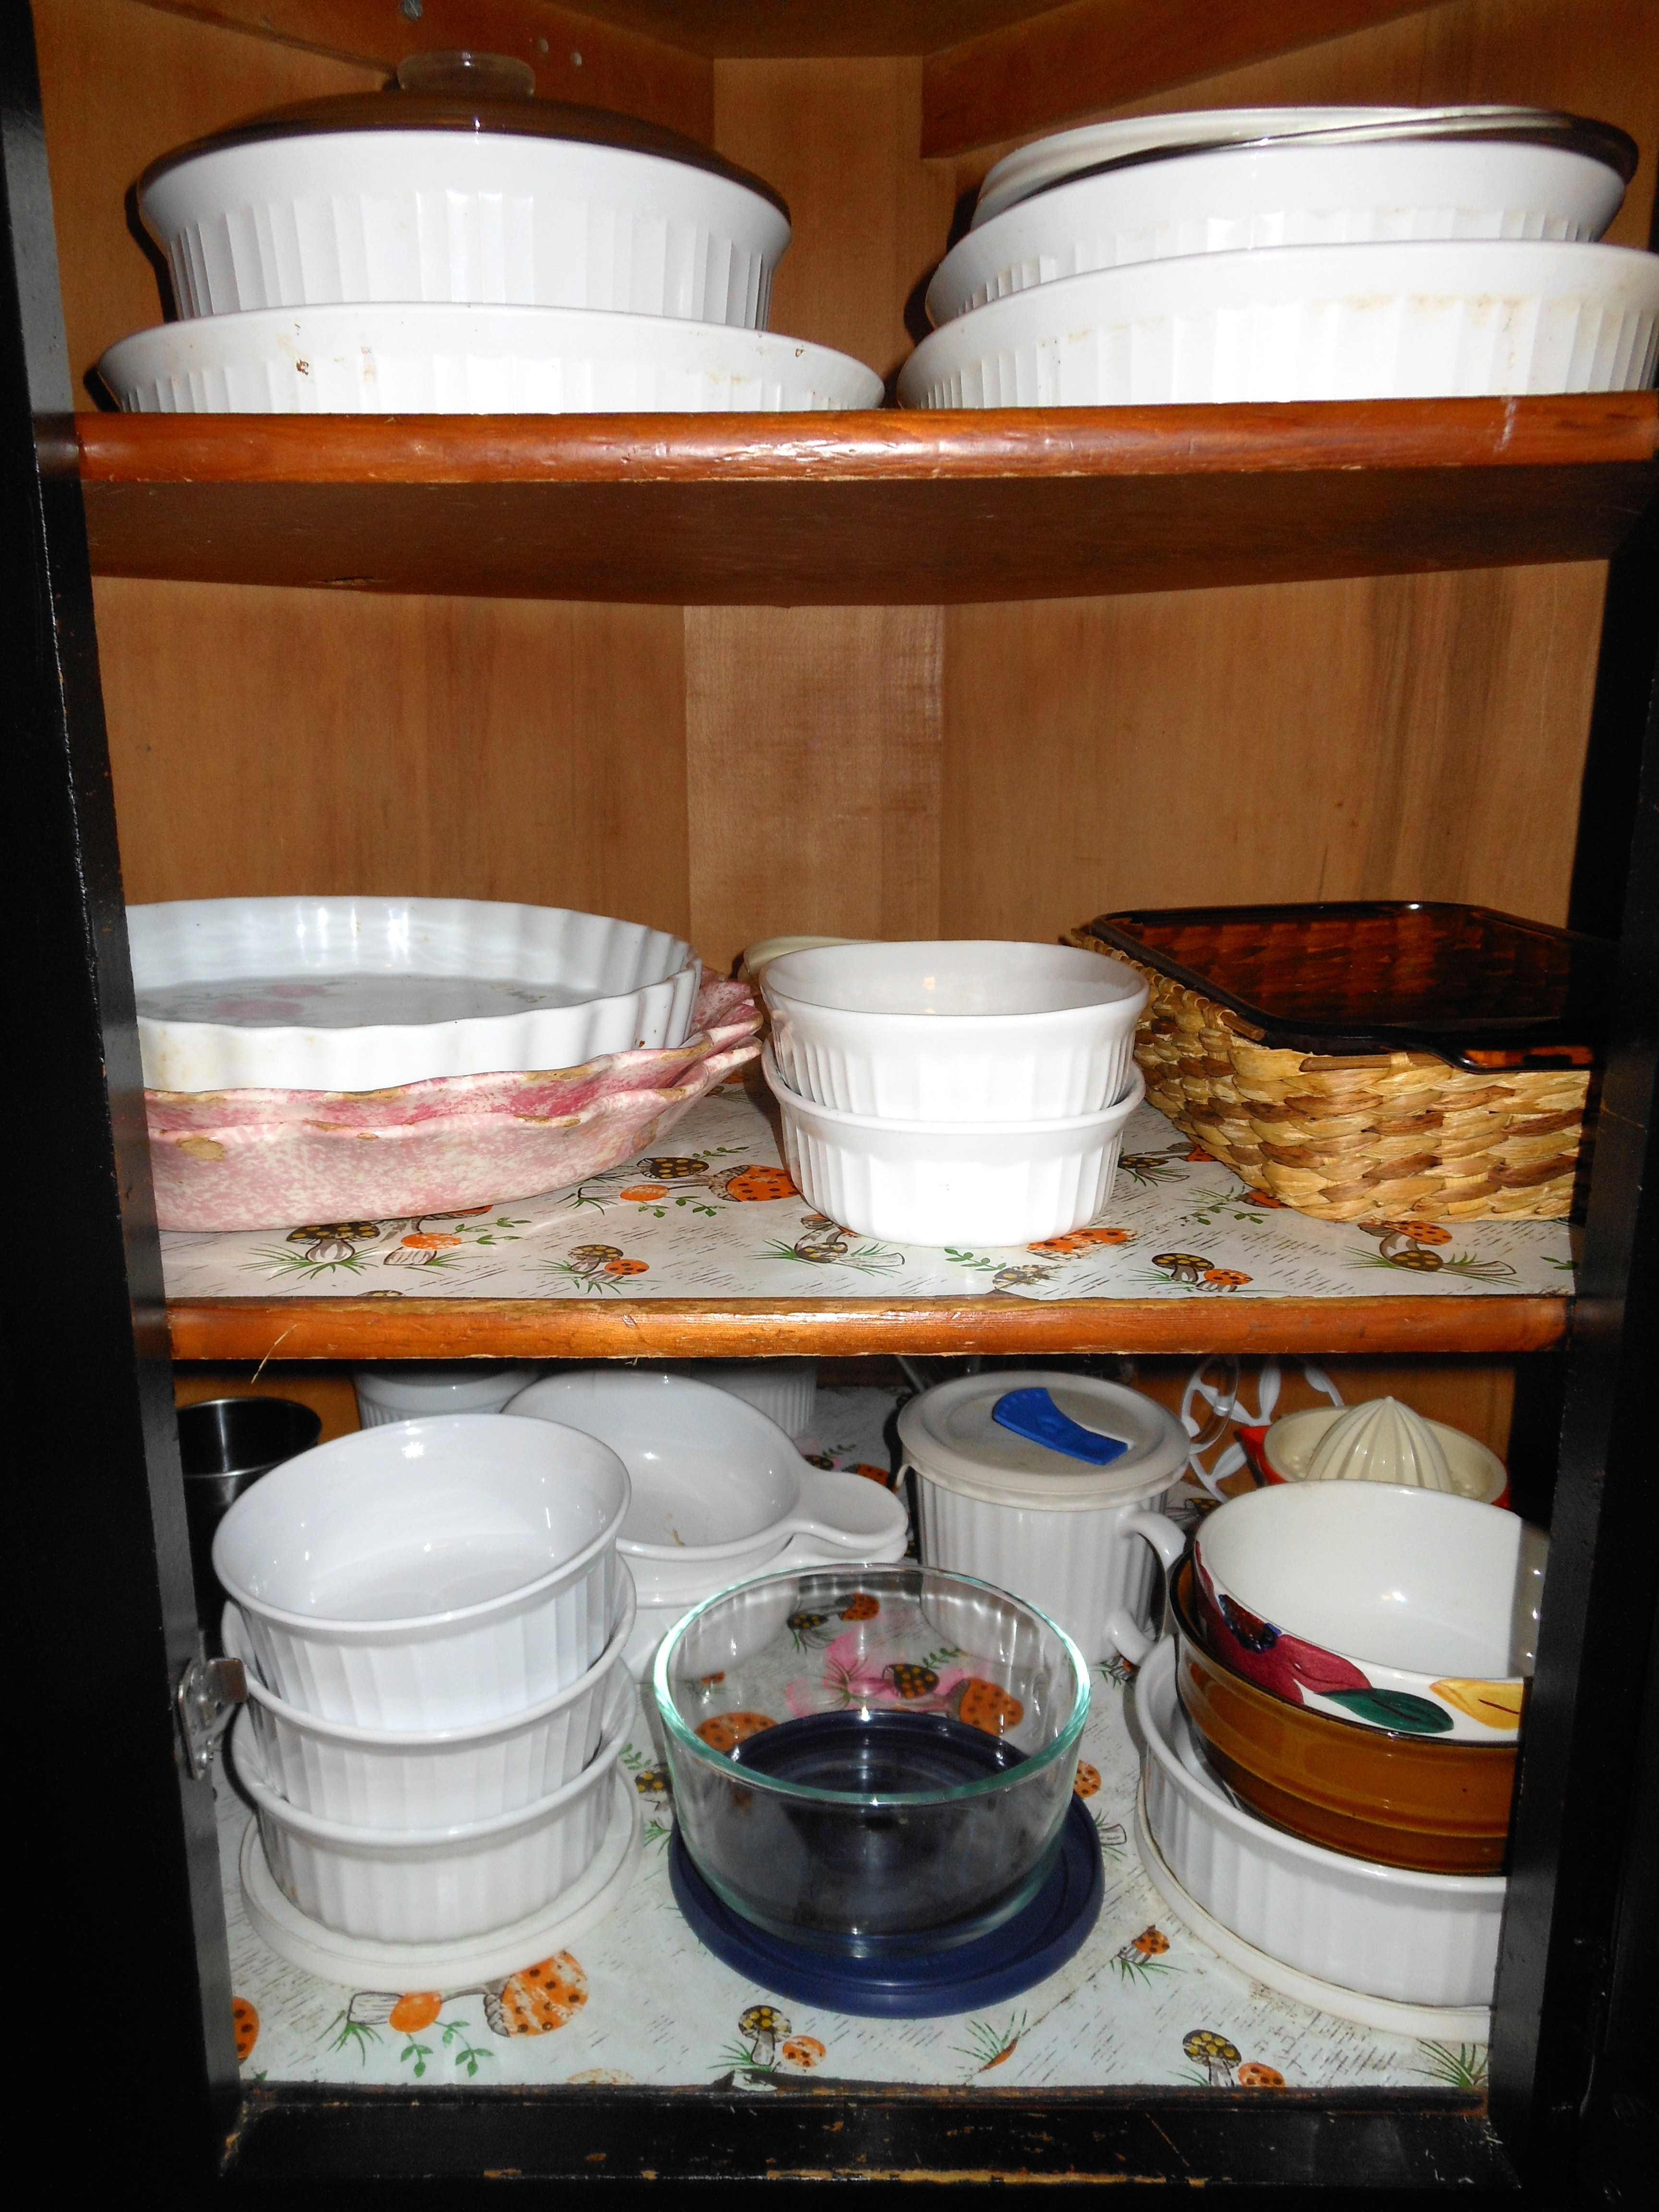 Stack dishware no more than3 high for ease of access.